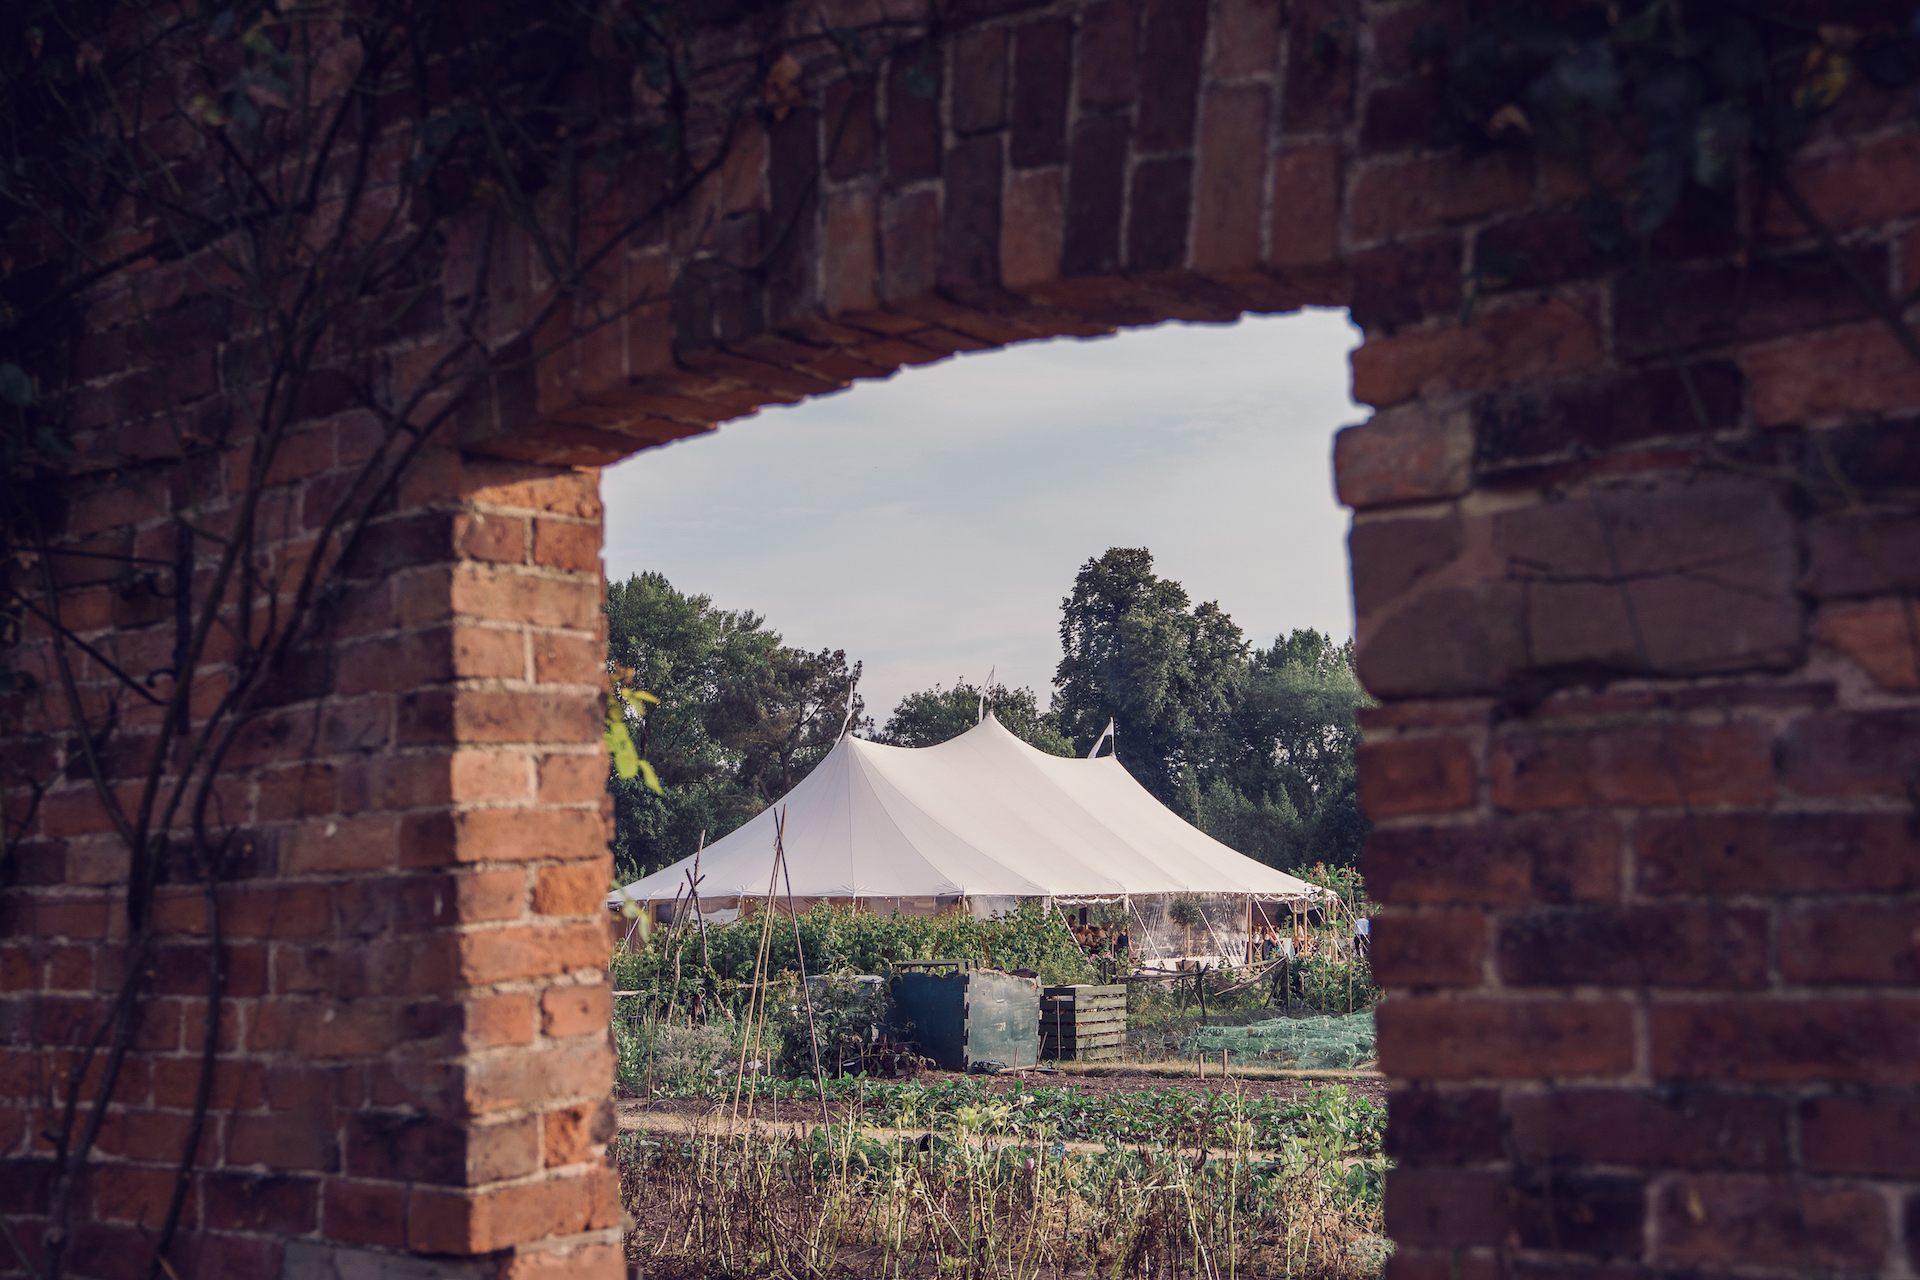 PapaKåta couple Louise & Alex's Sperry Wedding at Elford Hall Garden, Staffordshire captured by Jessica Raphael Photography- Sperry Tent Walled Garden Wedding